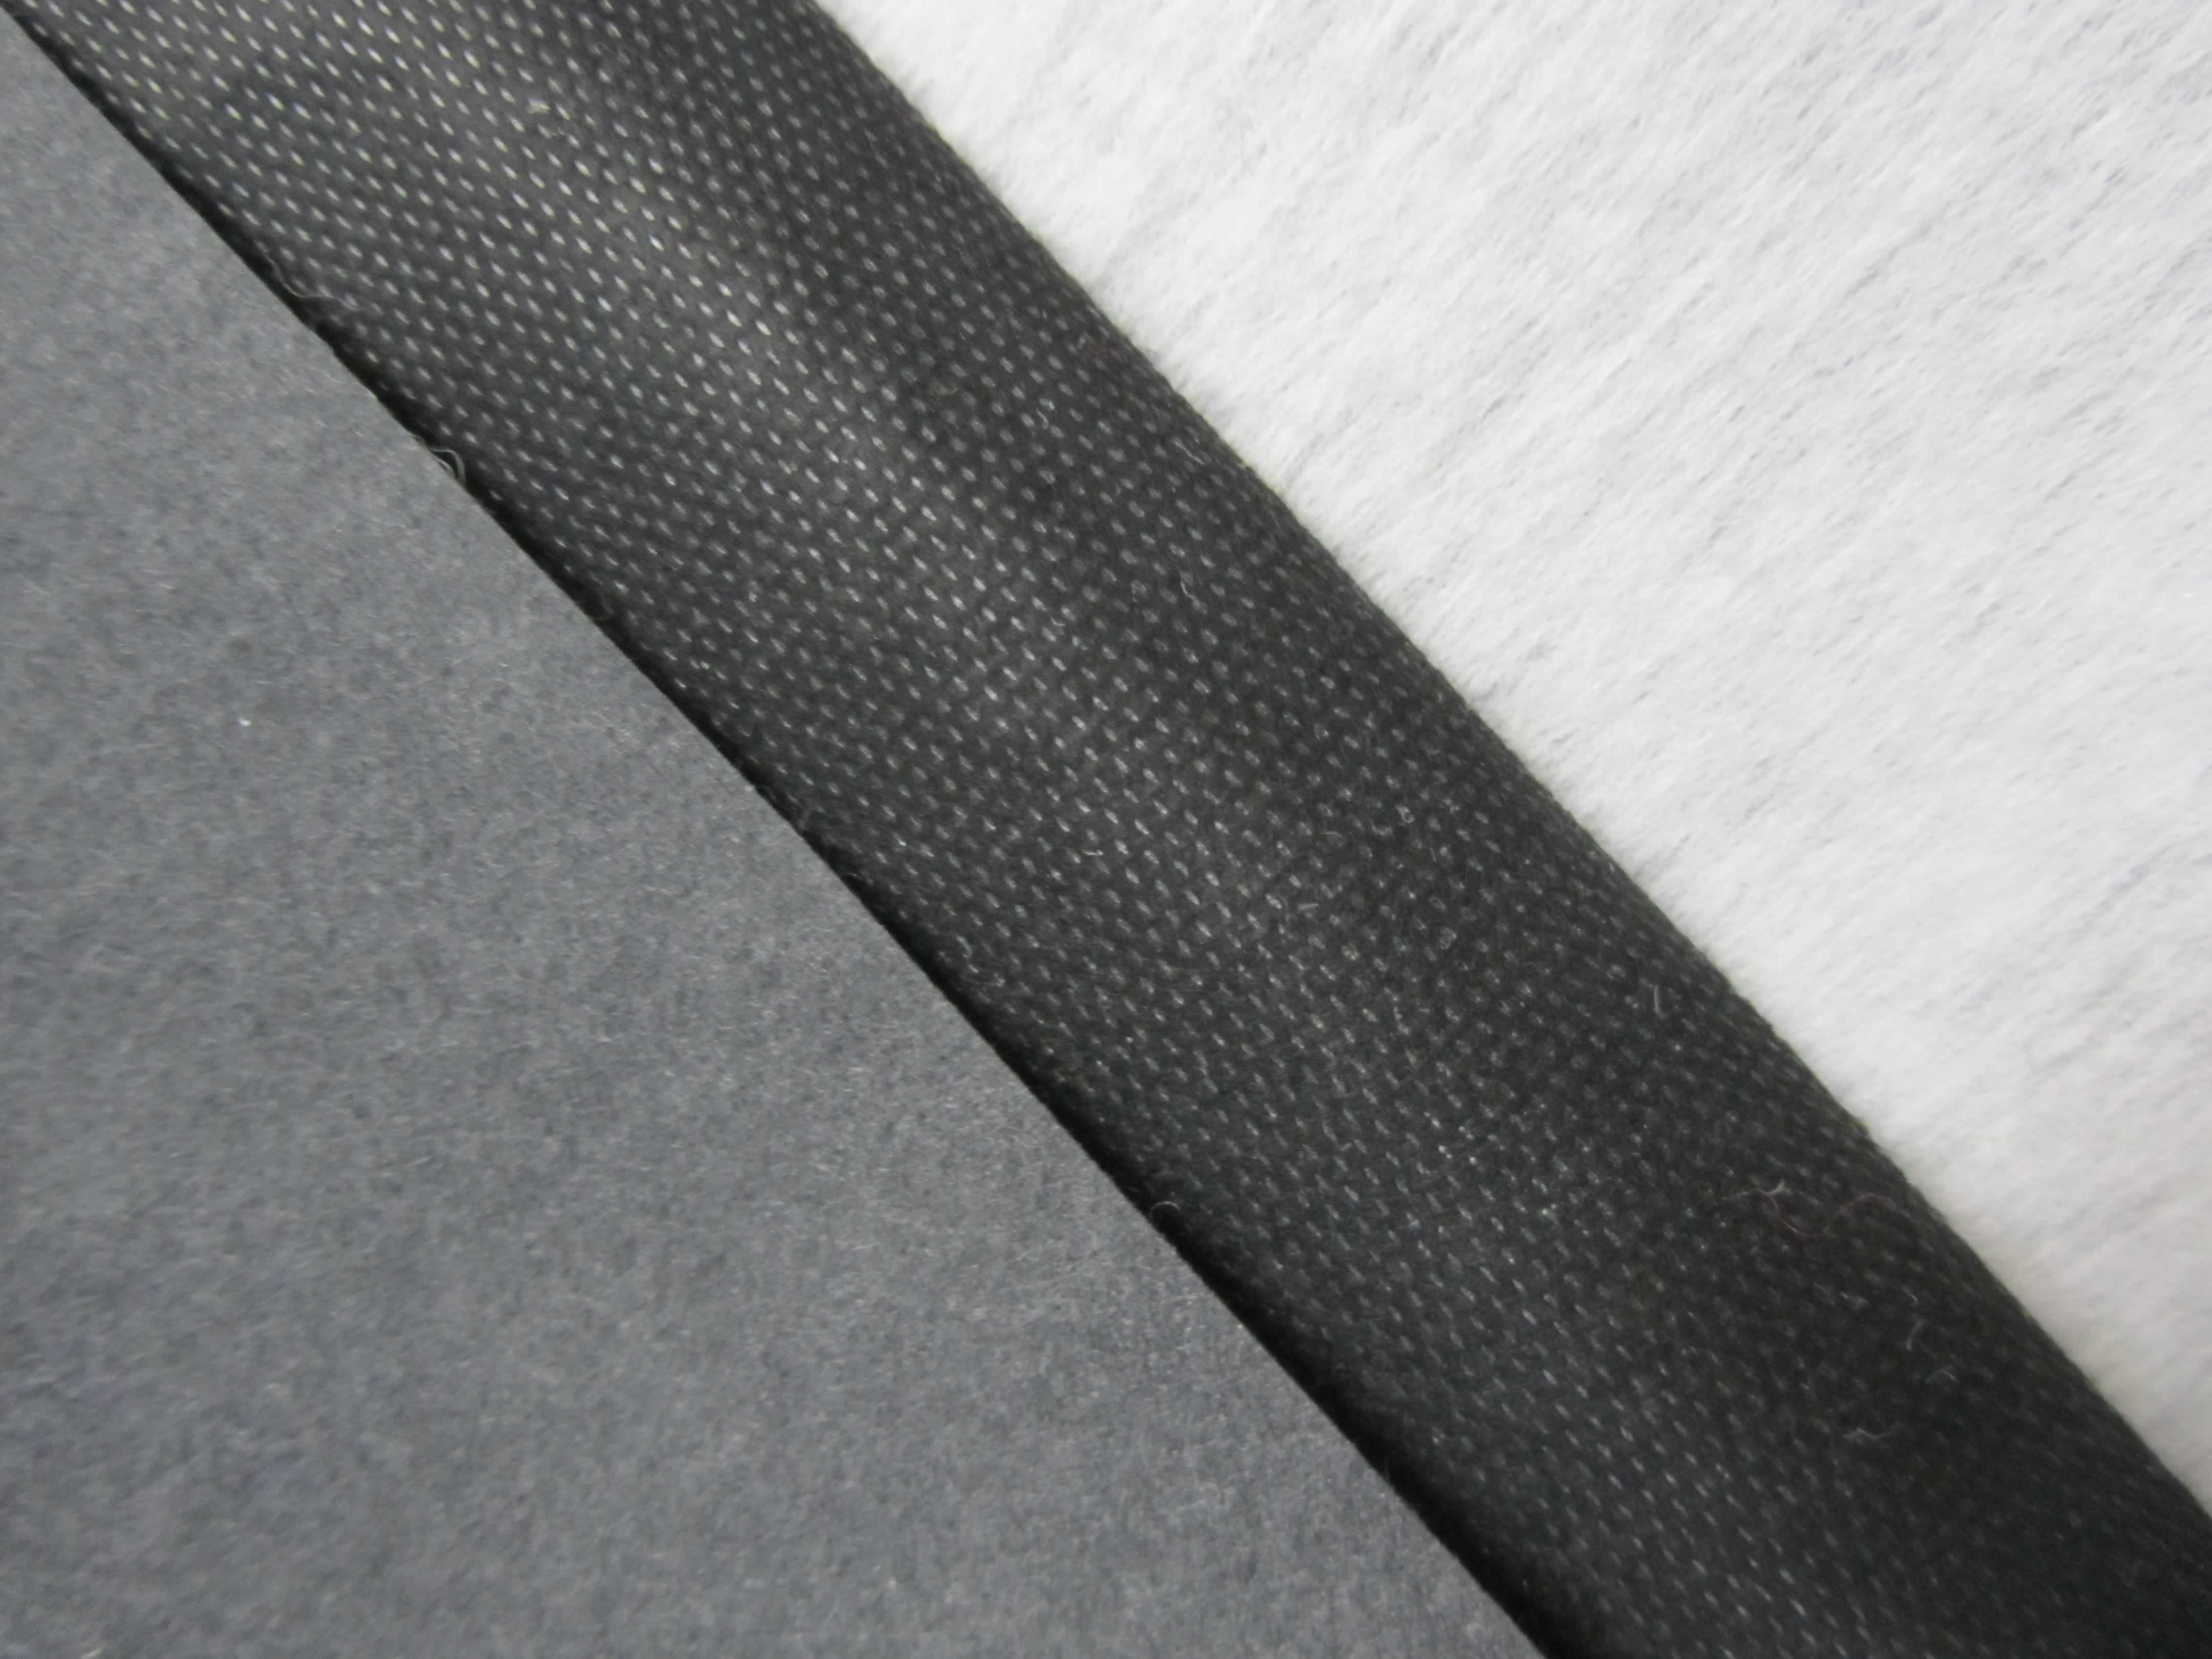 Examples of other nonwoven materials